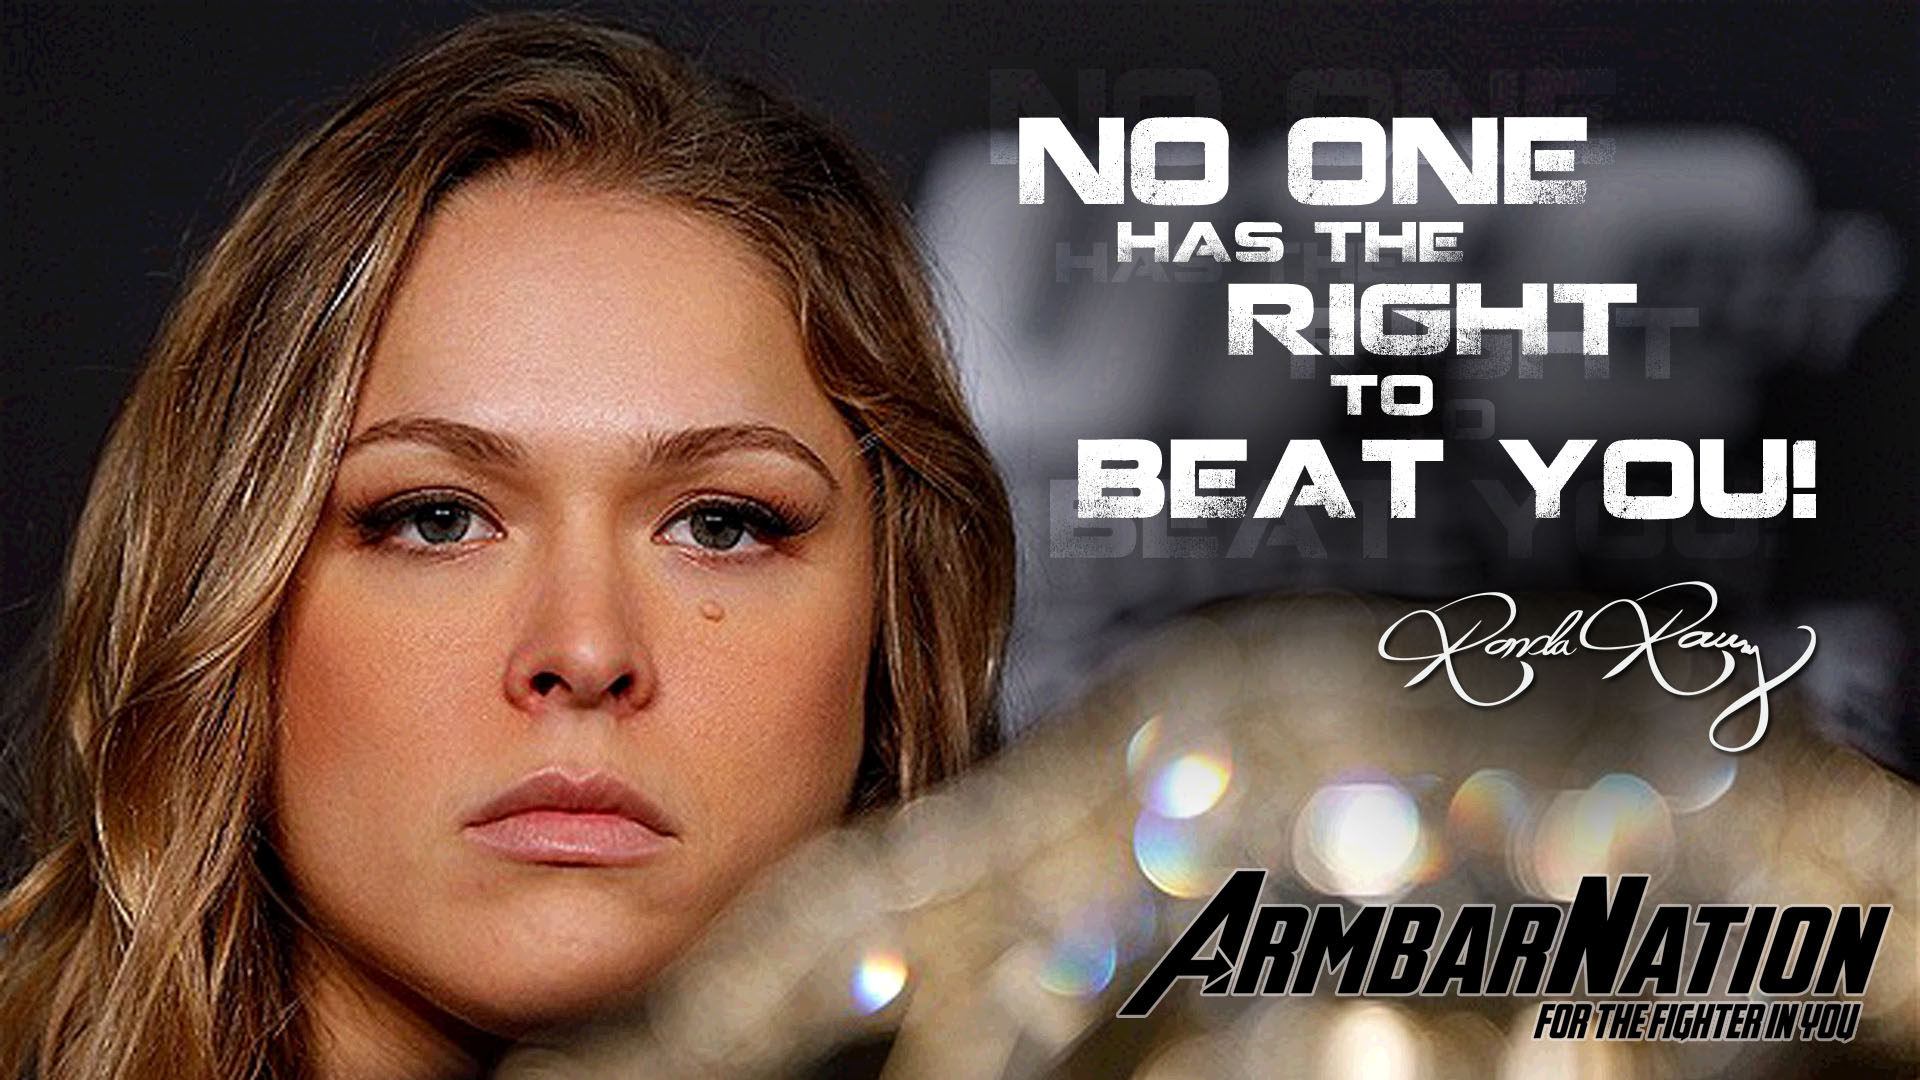 Armbar Nations Ronda Rousey Wallpapers ArmbarNation 1920x1080